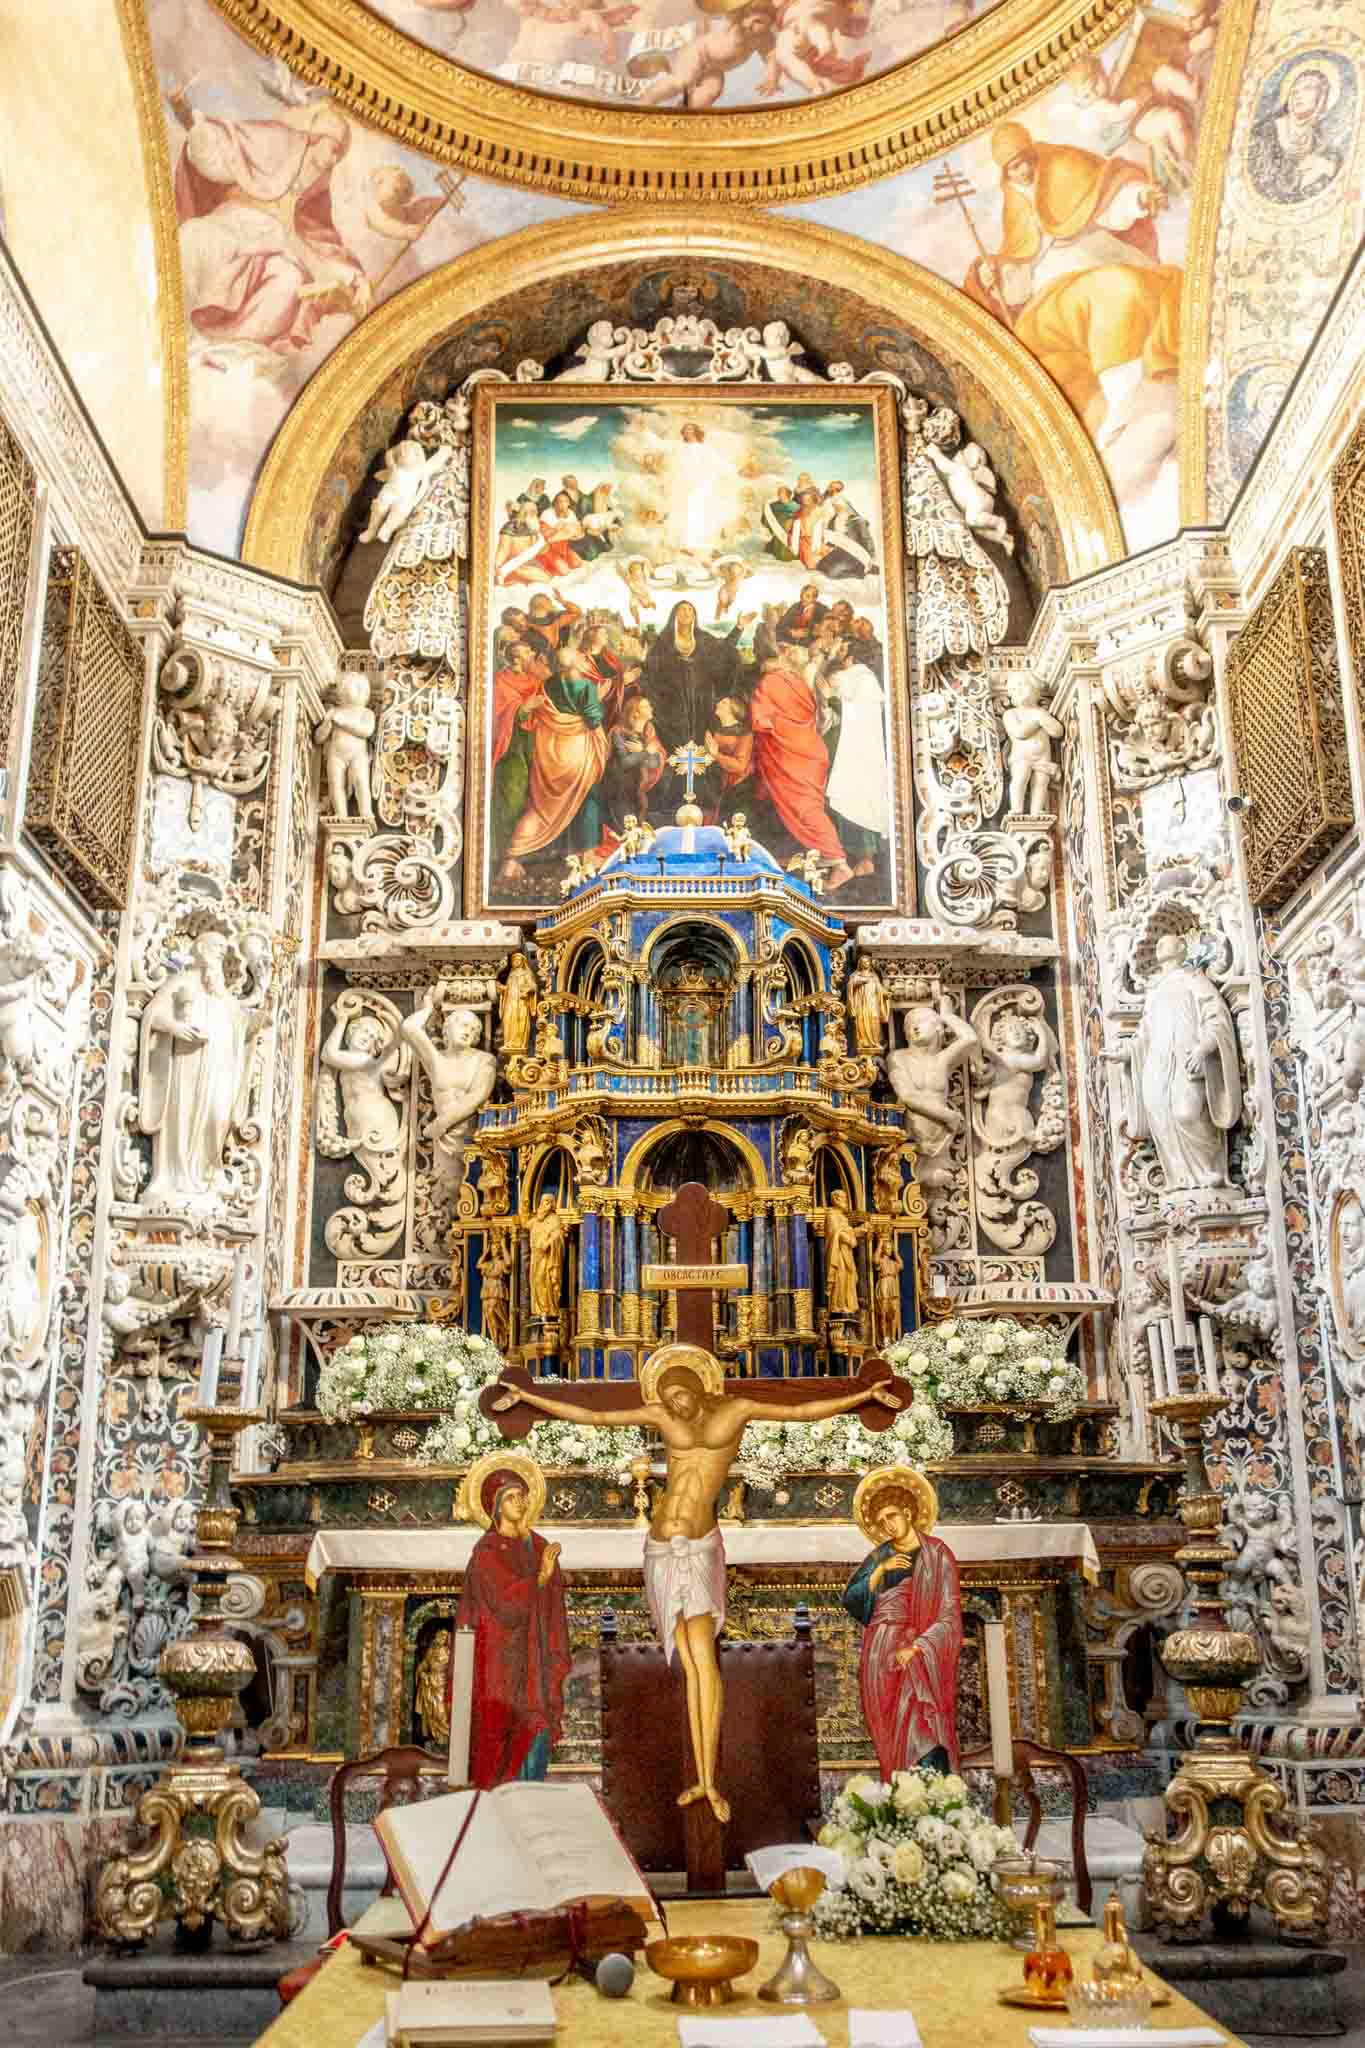 Elaborate carved marble altar with a painting of Jesus